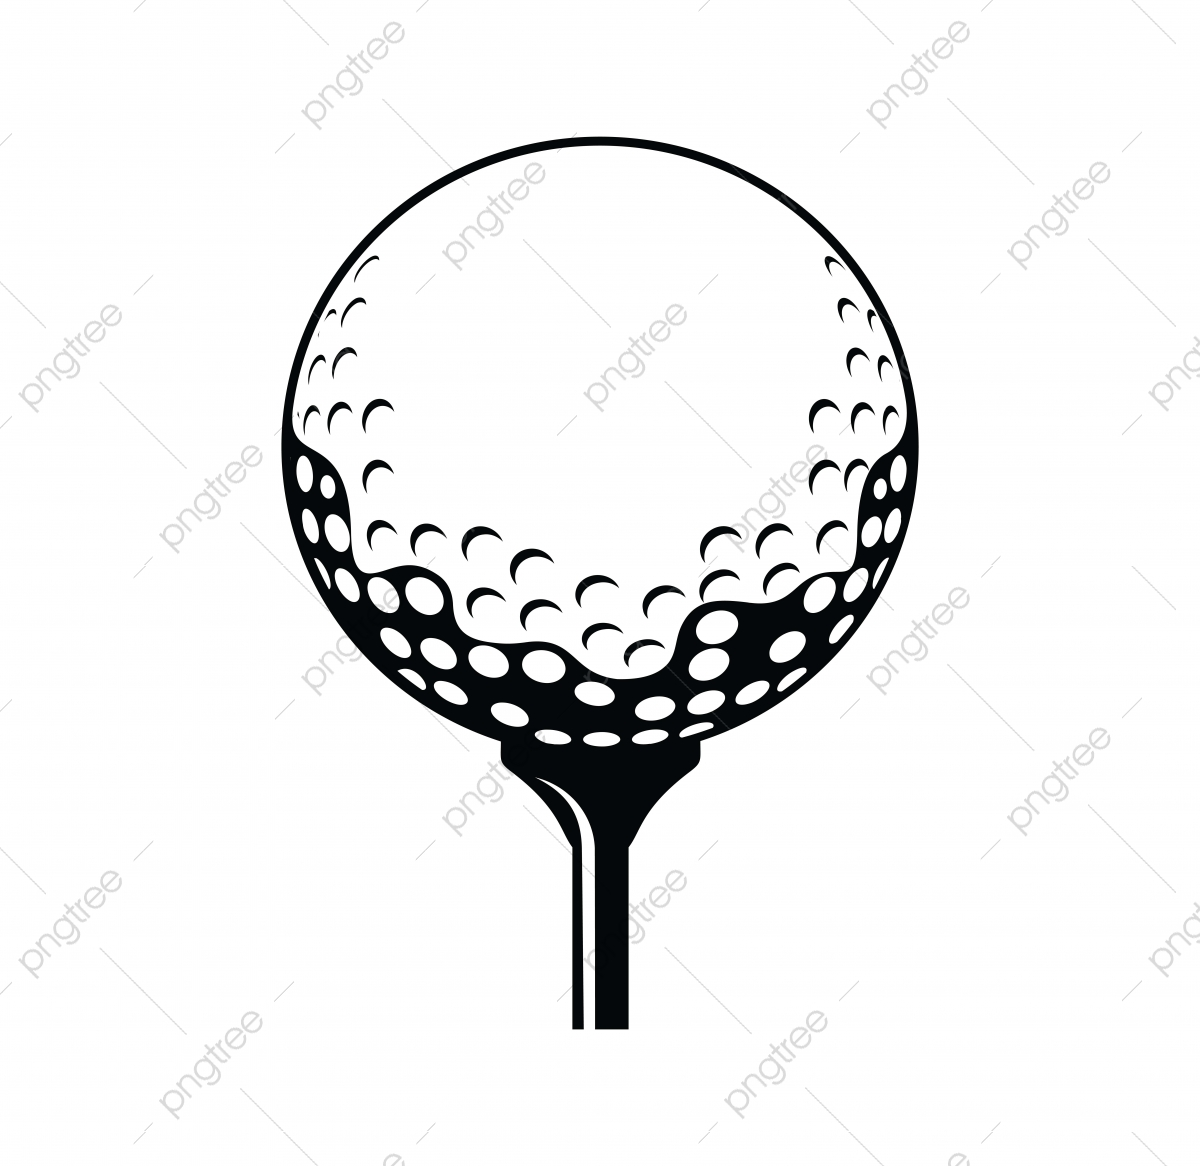 Golf Ball Vector Icon Black And White Black Icons White Icons Golf Icons Png And Vector With Transparent Background For Free Download